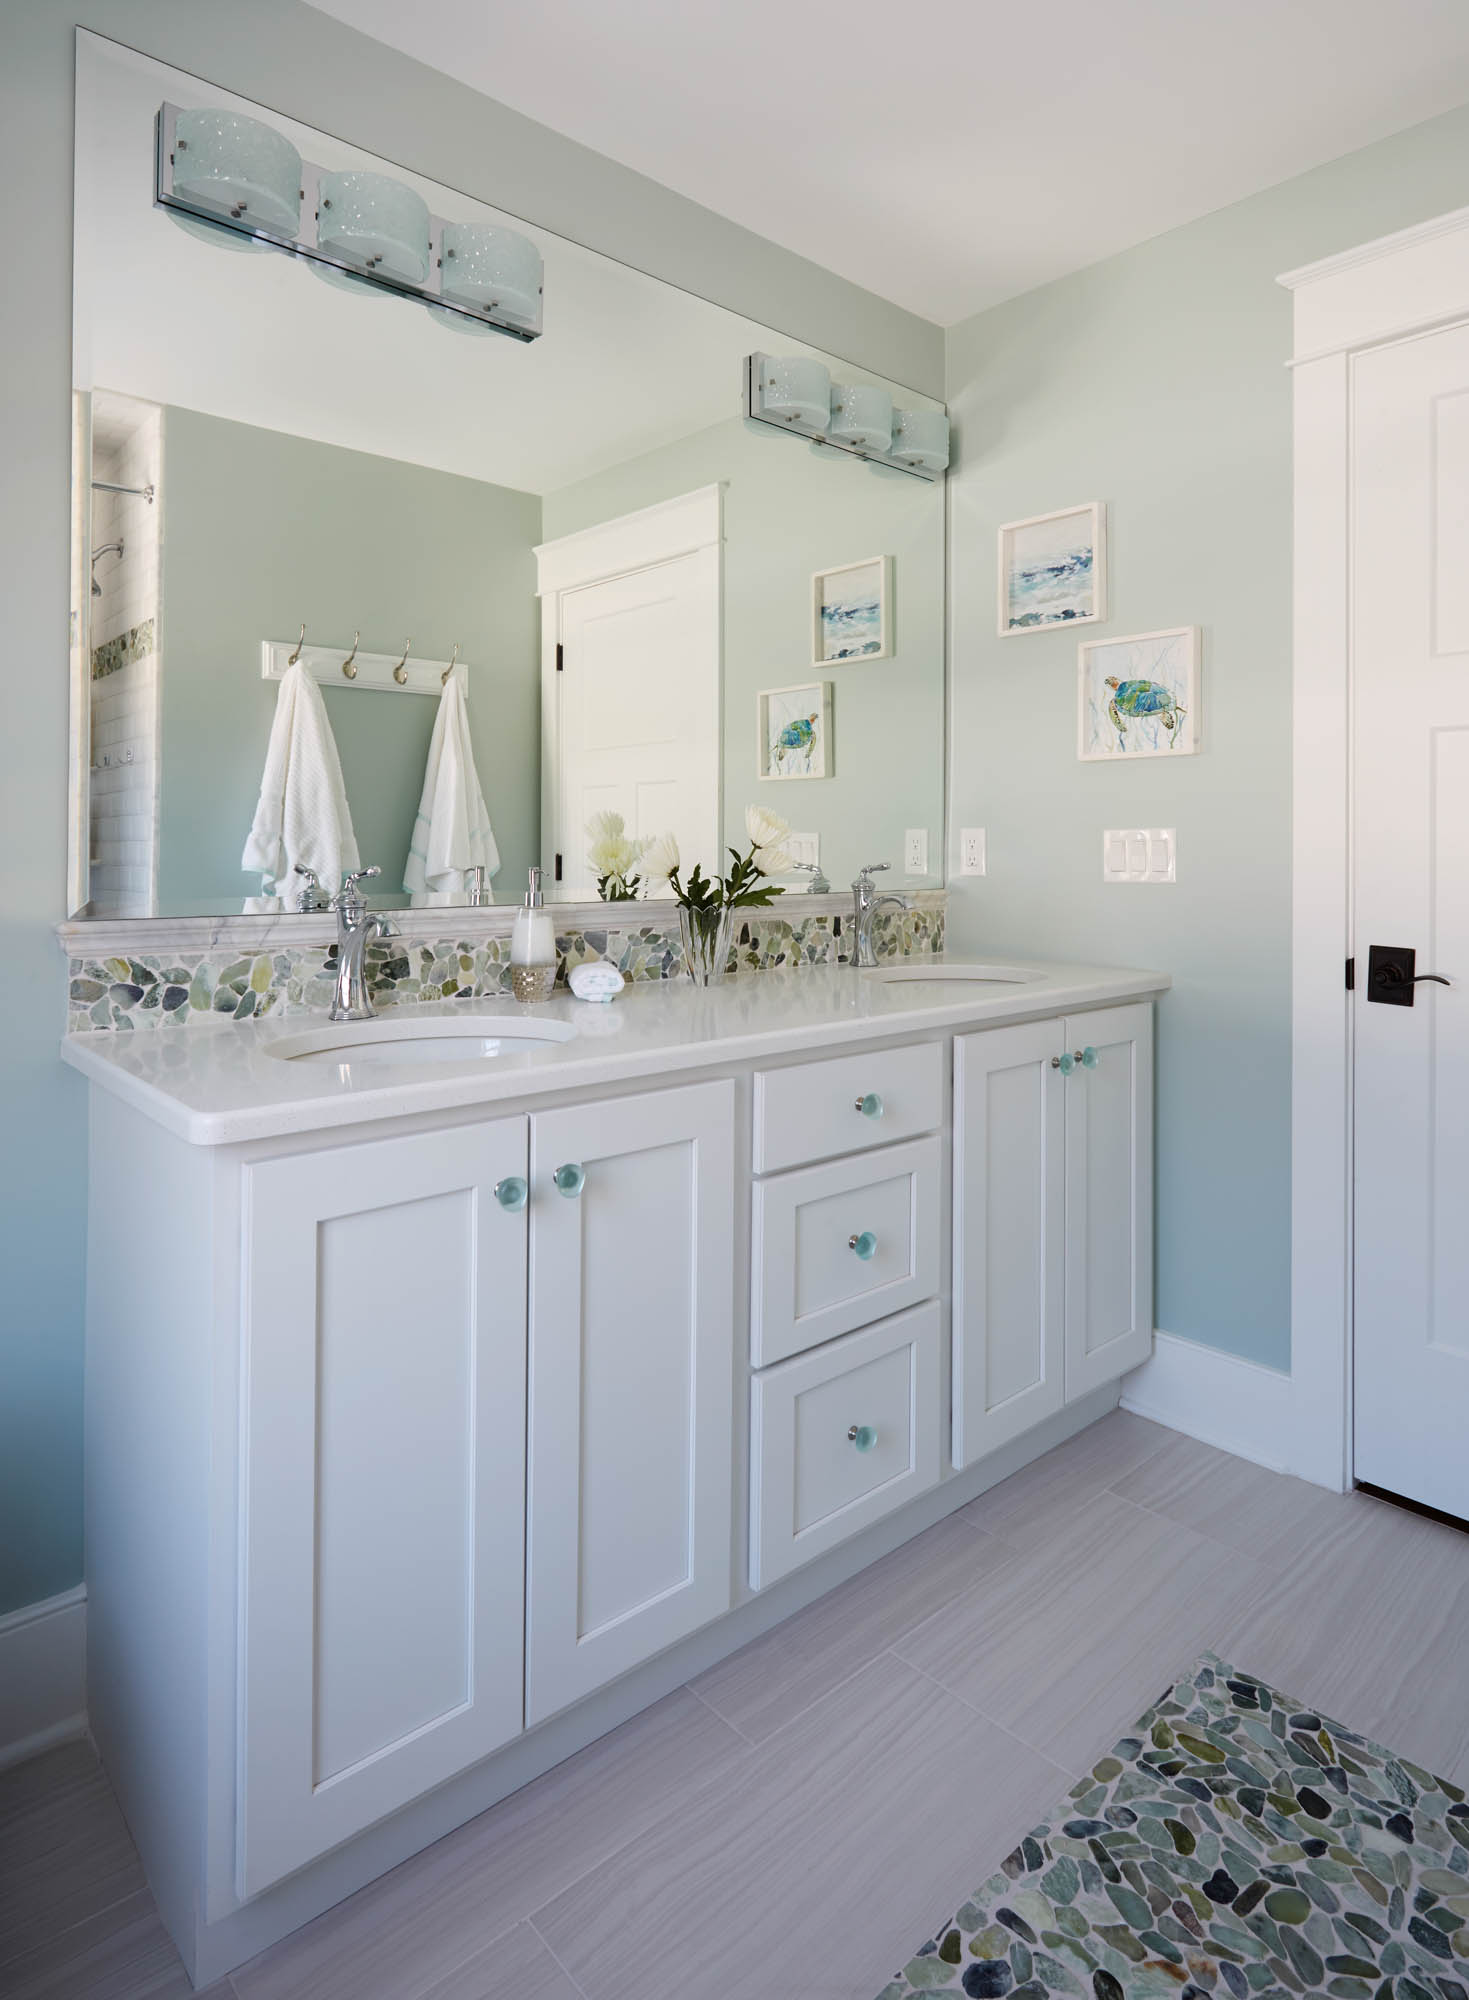 Painted guest bathroom cabinets in Extra White